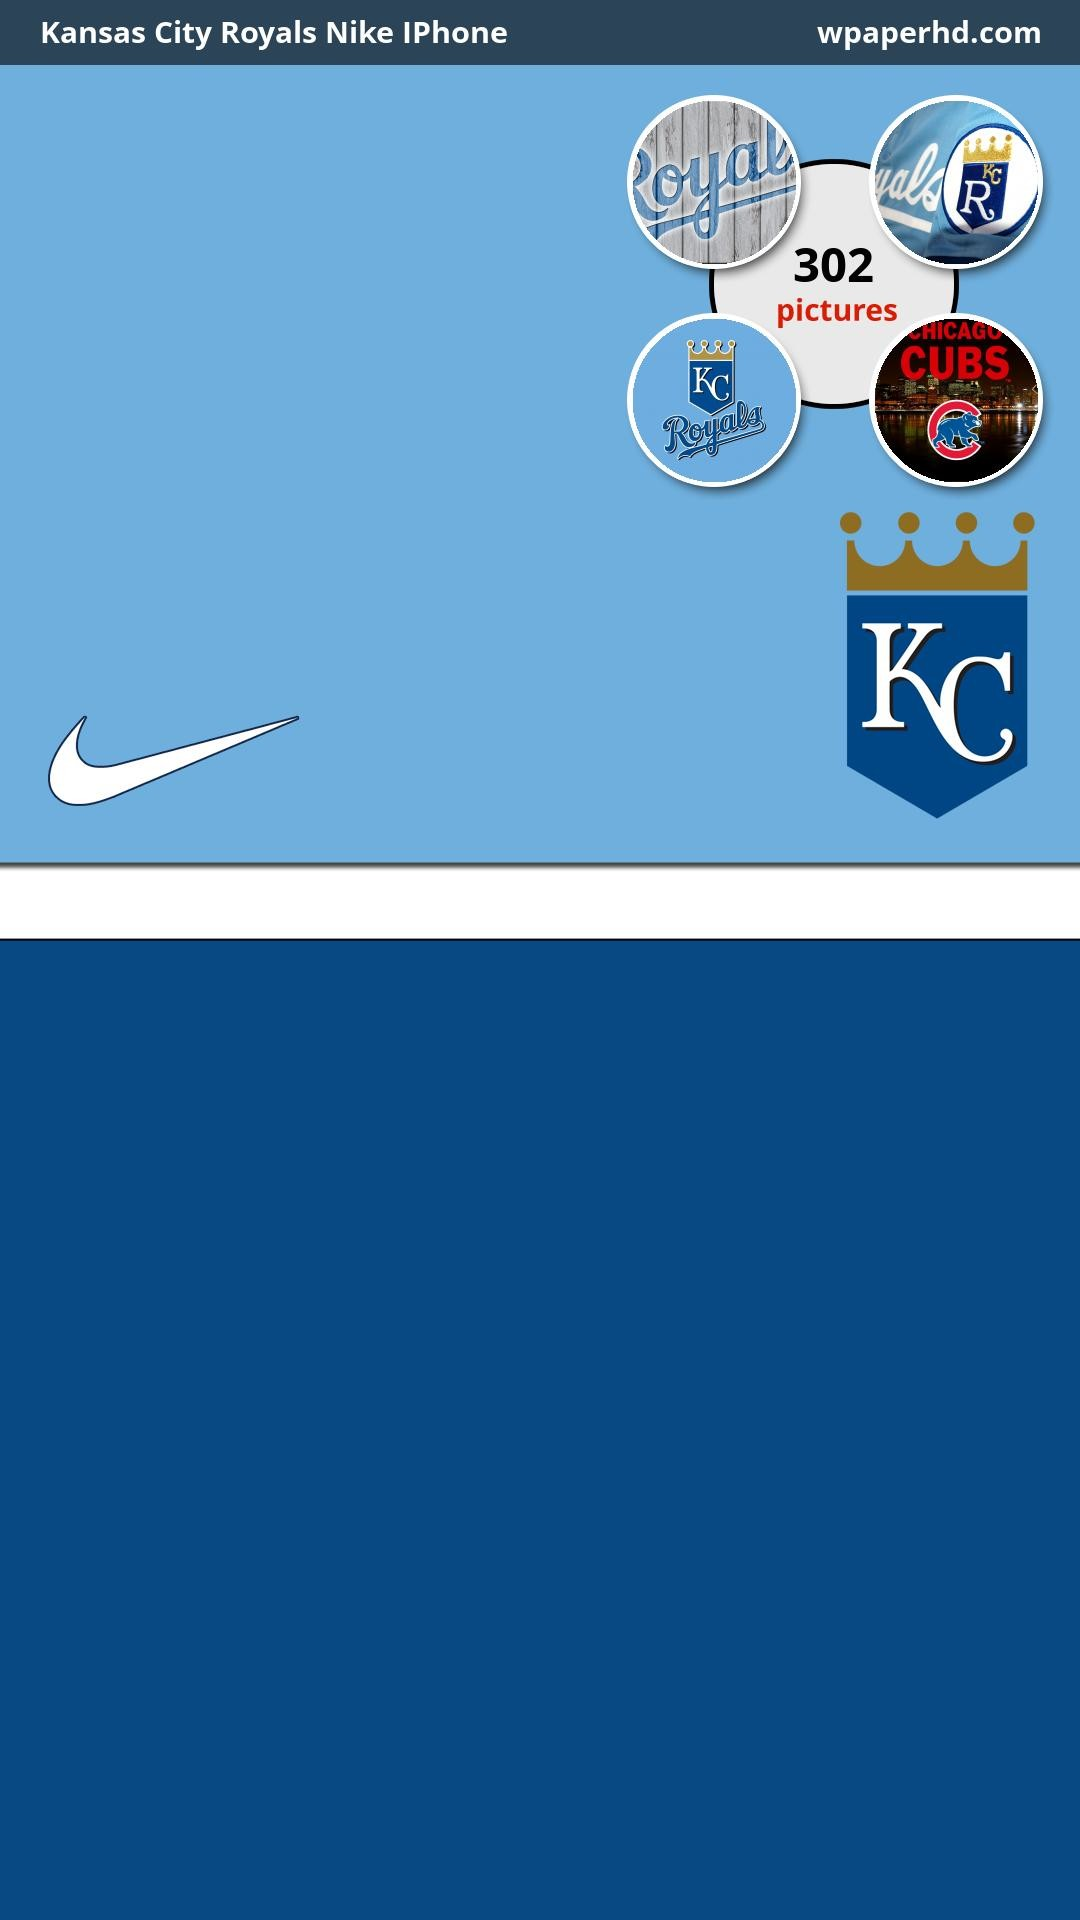 1080x1920 KC Royals IPhone Pics (Mobile, iPad)